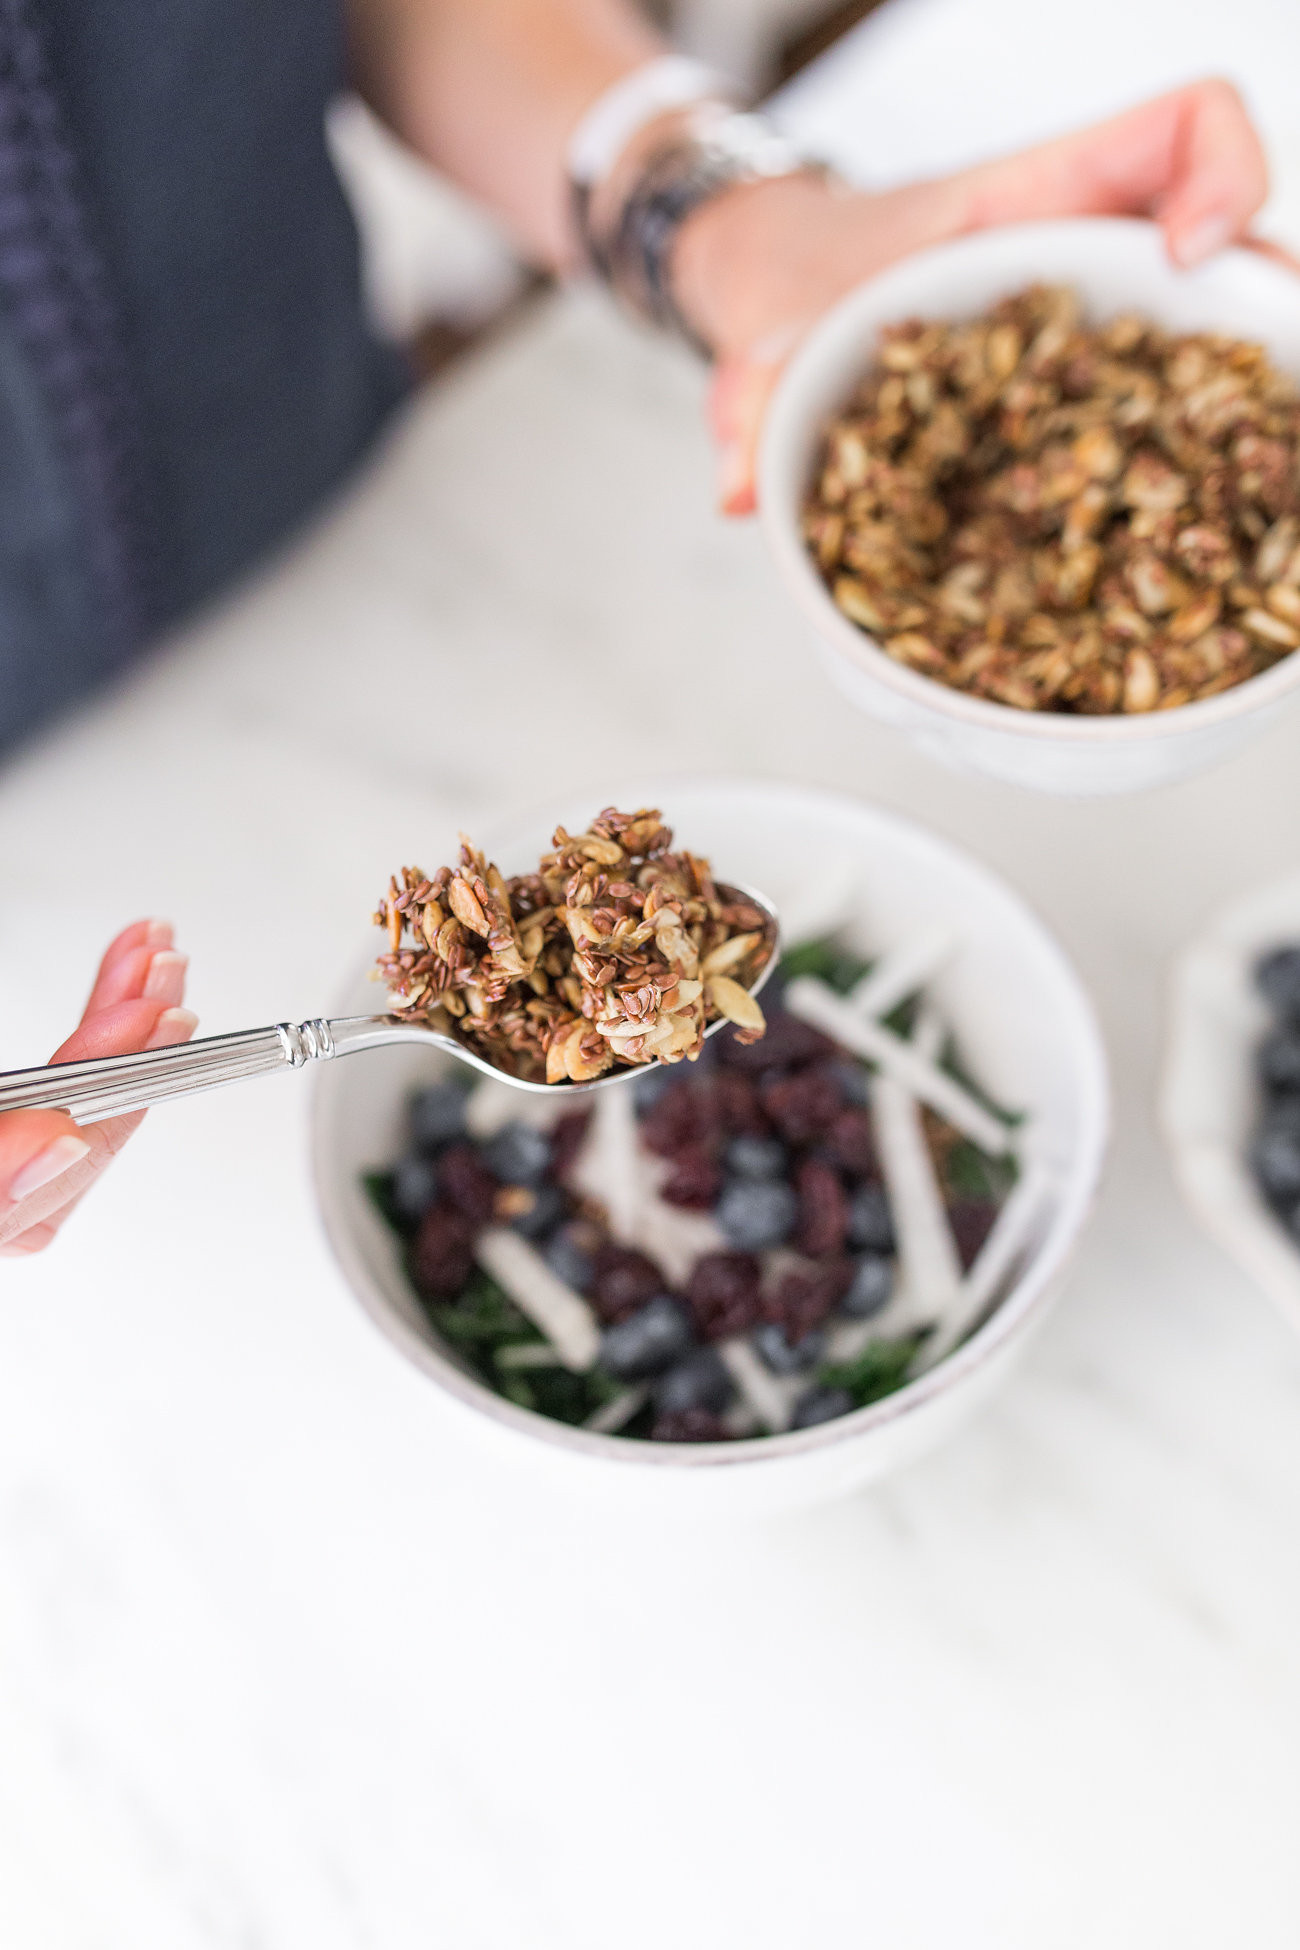 Healthy Breakfast Dallas  Quick and Healthy Breakfast Bowl • The Lush List